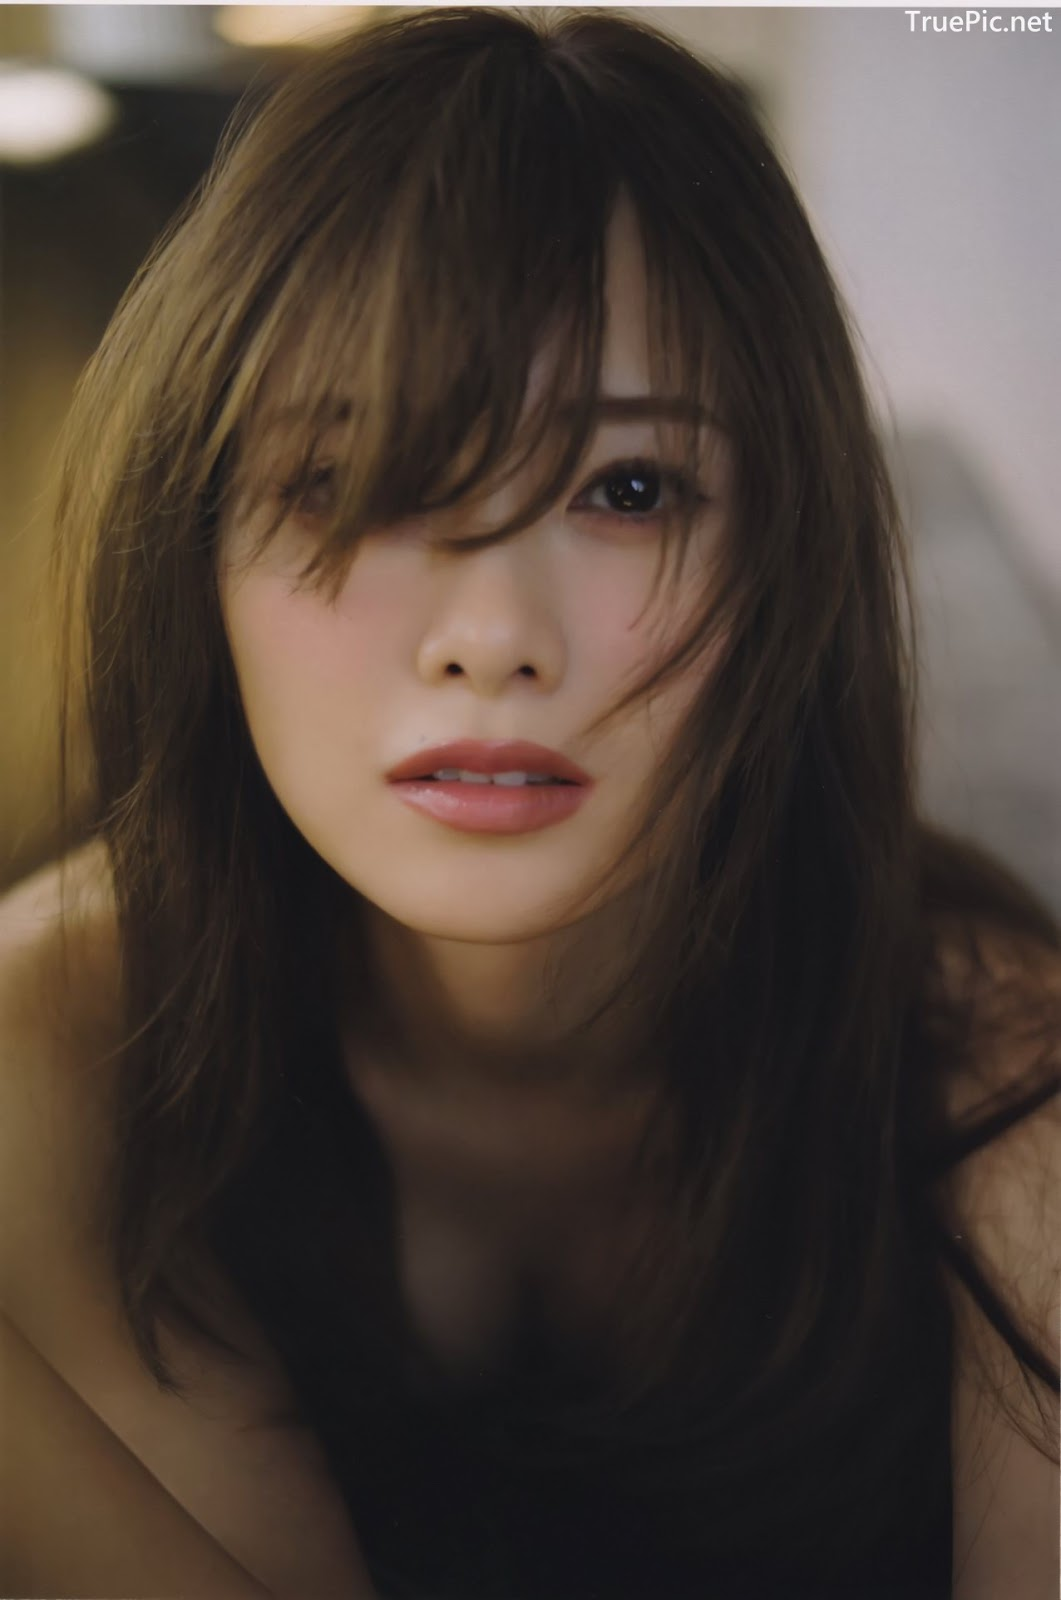 Image Japanese Singer And Model - Mai Shiraishi - Charming Beauty Of Angel - TruePic.net - Picture-2